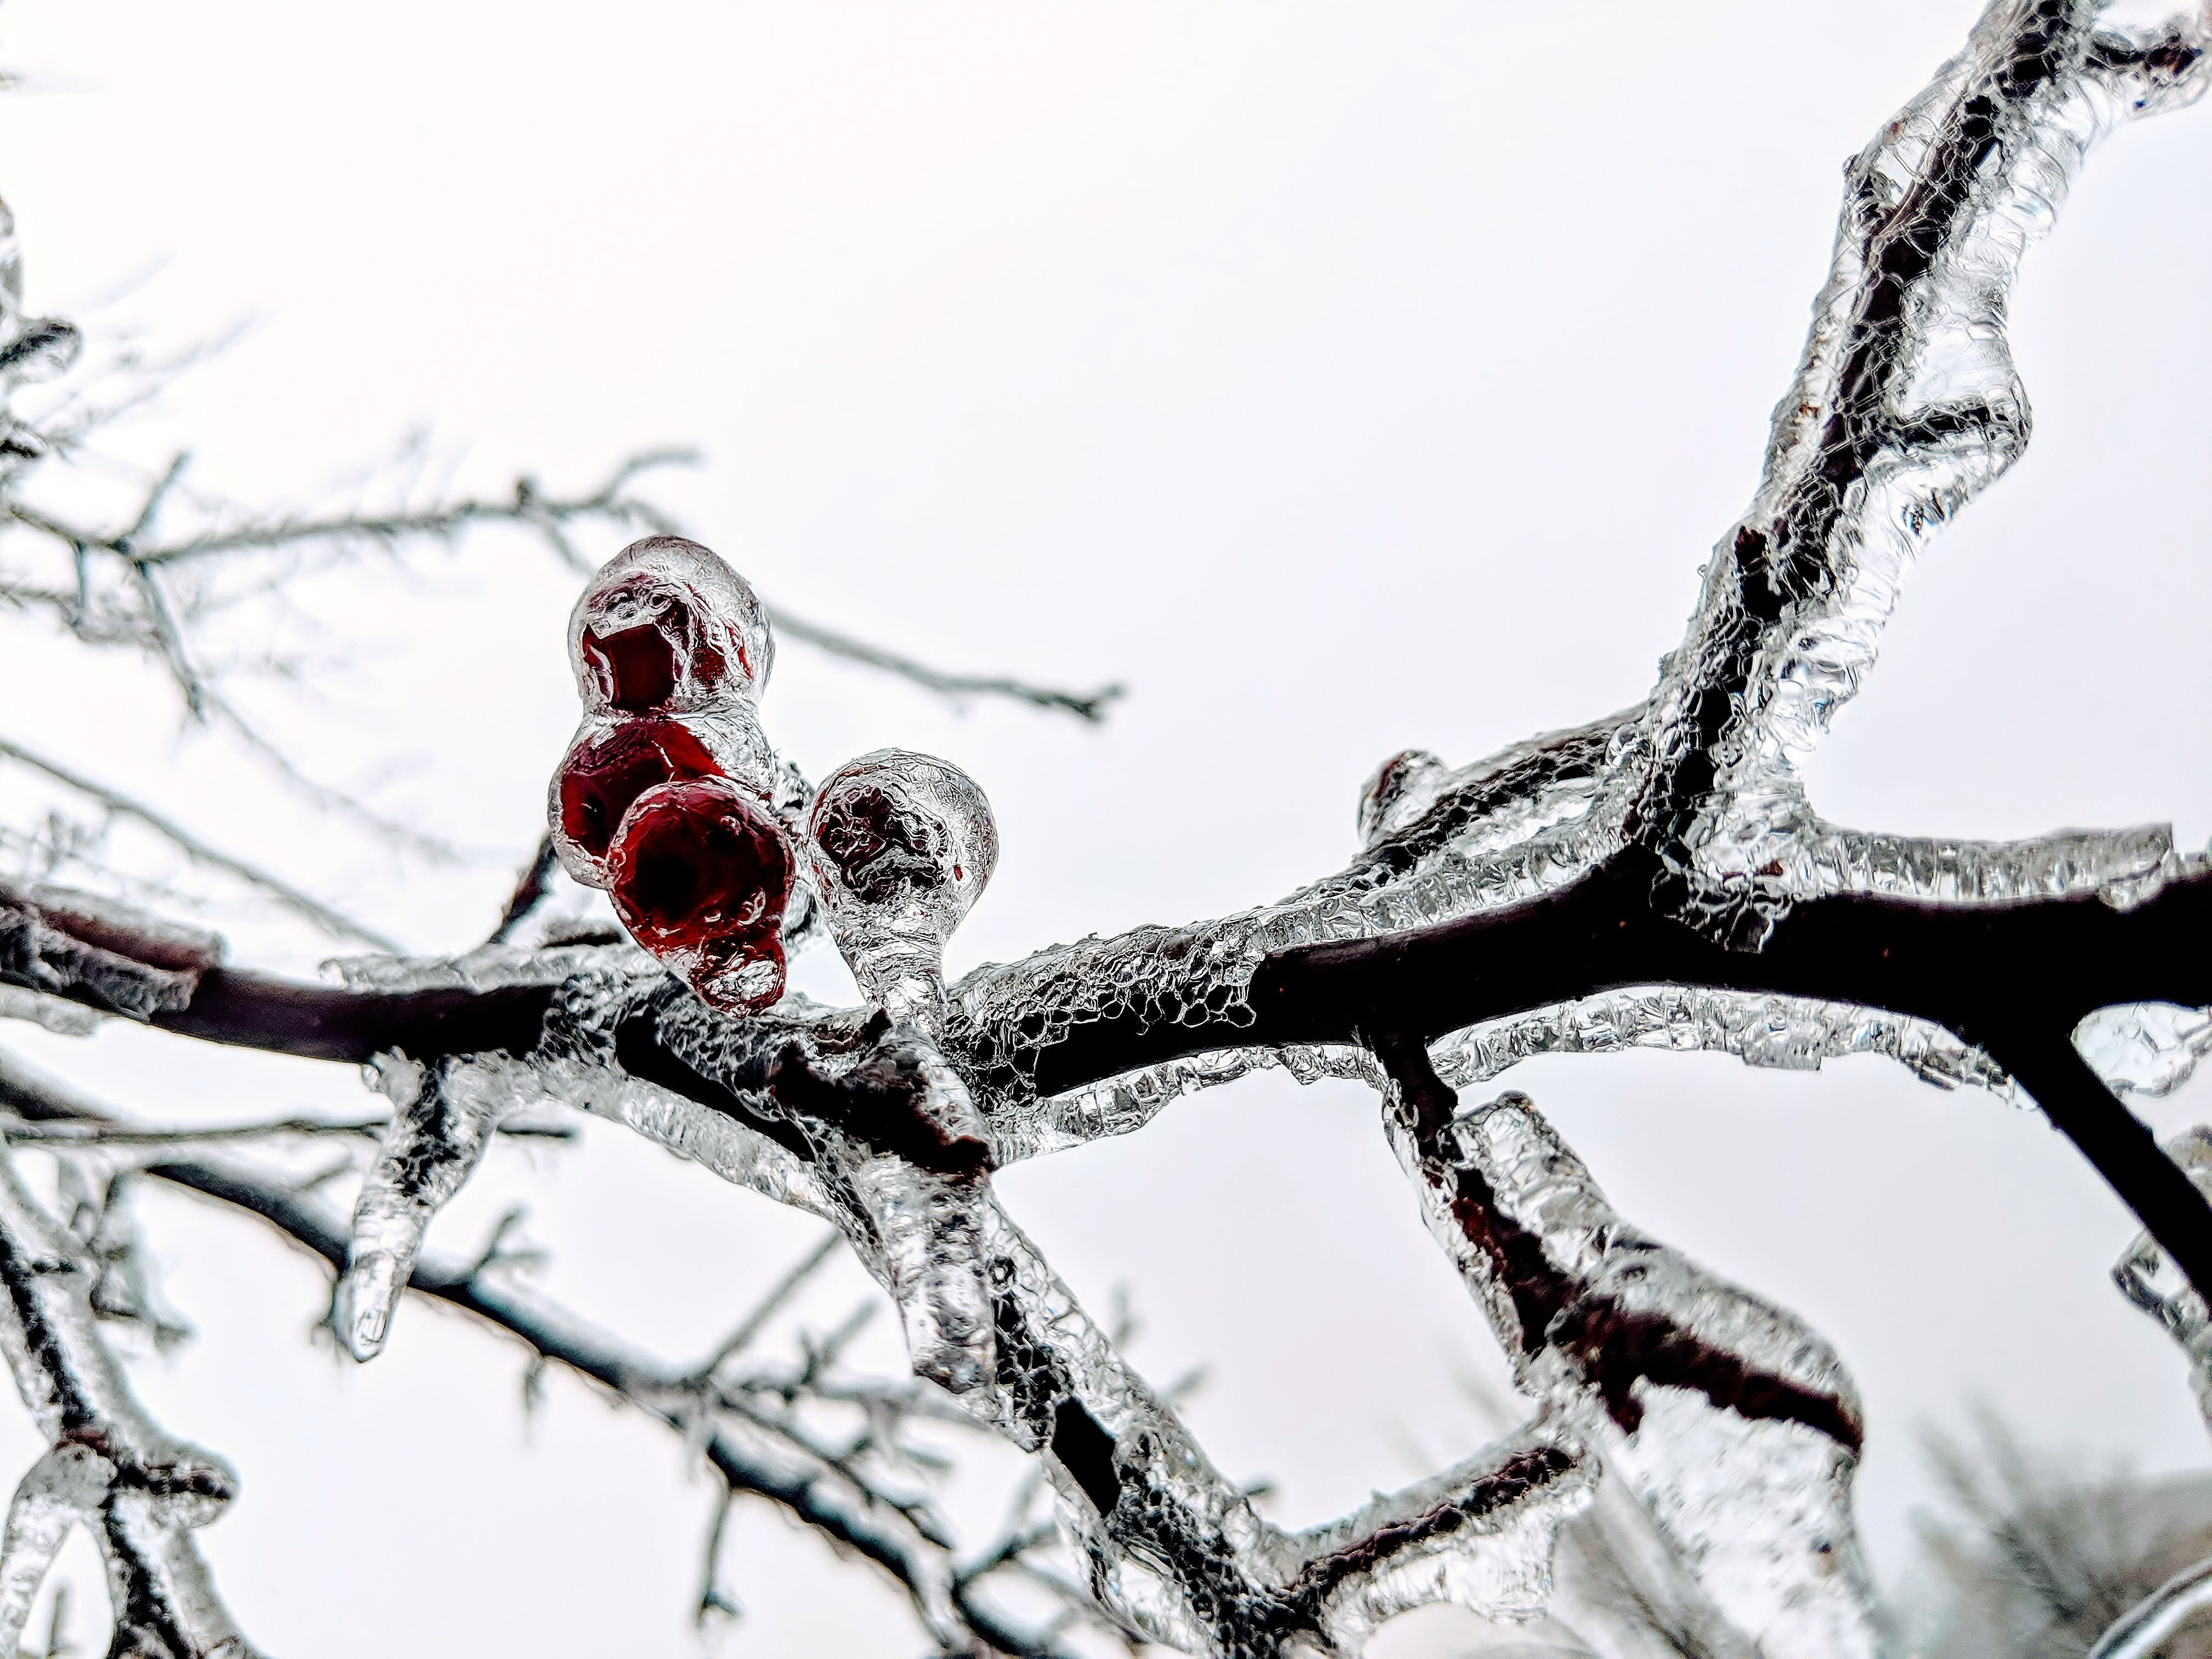 Free stock photo of Frozen berries, frozen branches, icy branches, snow branches